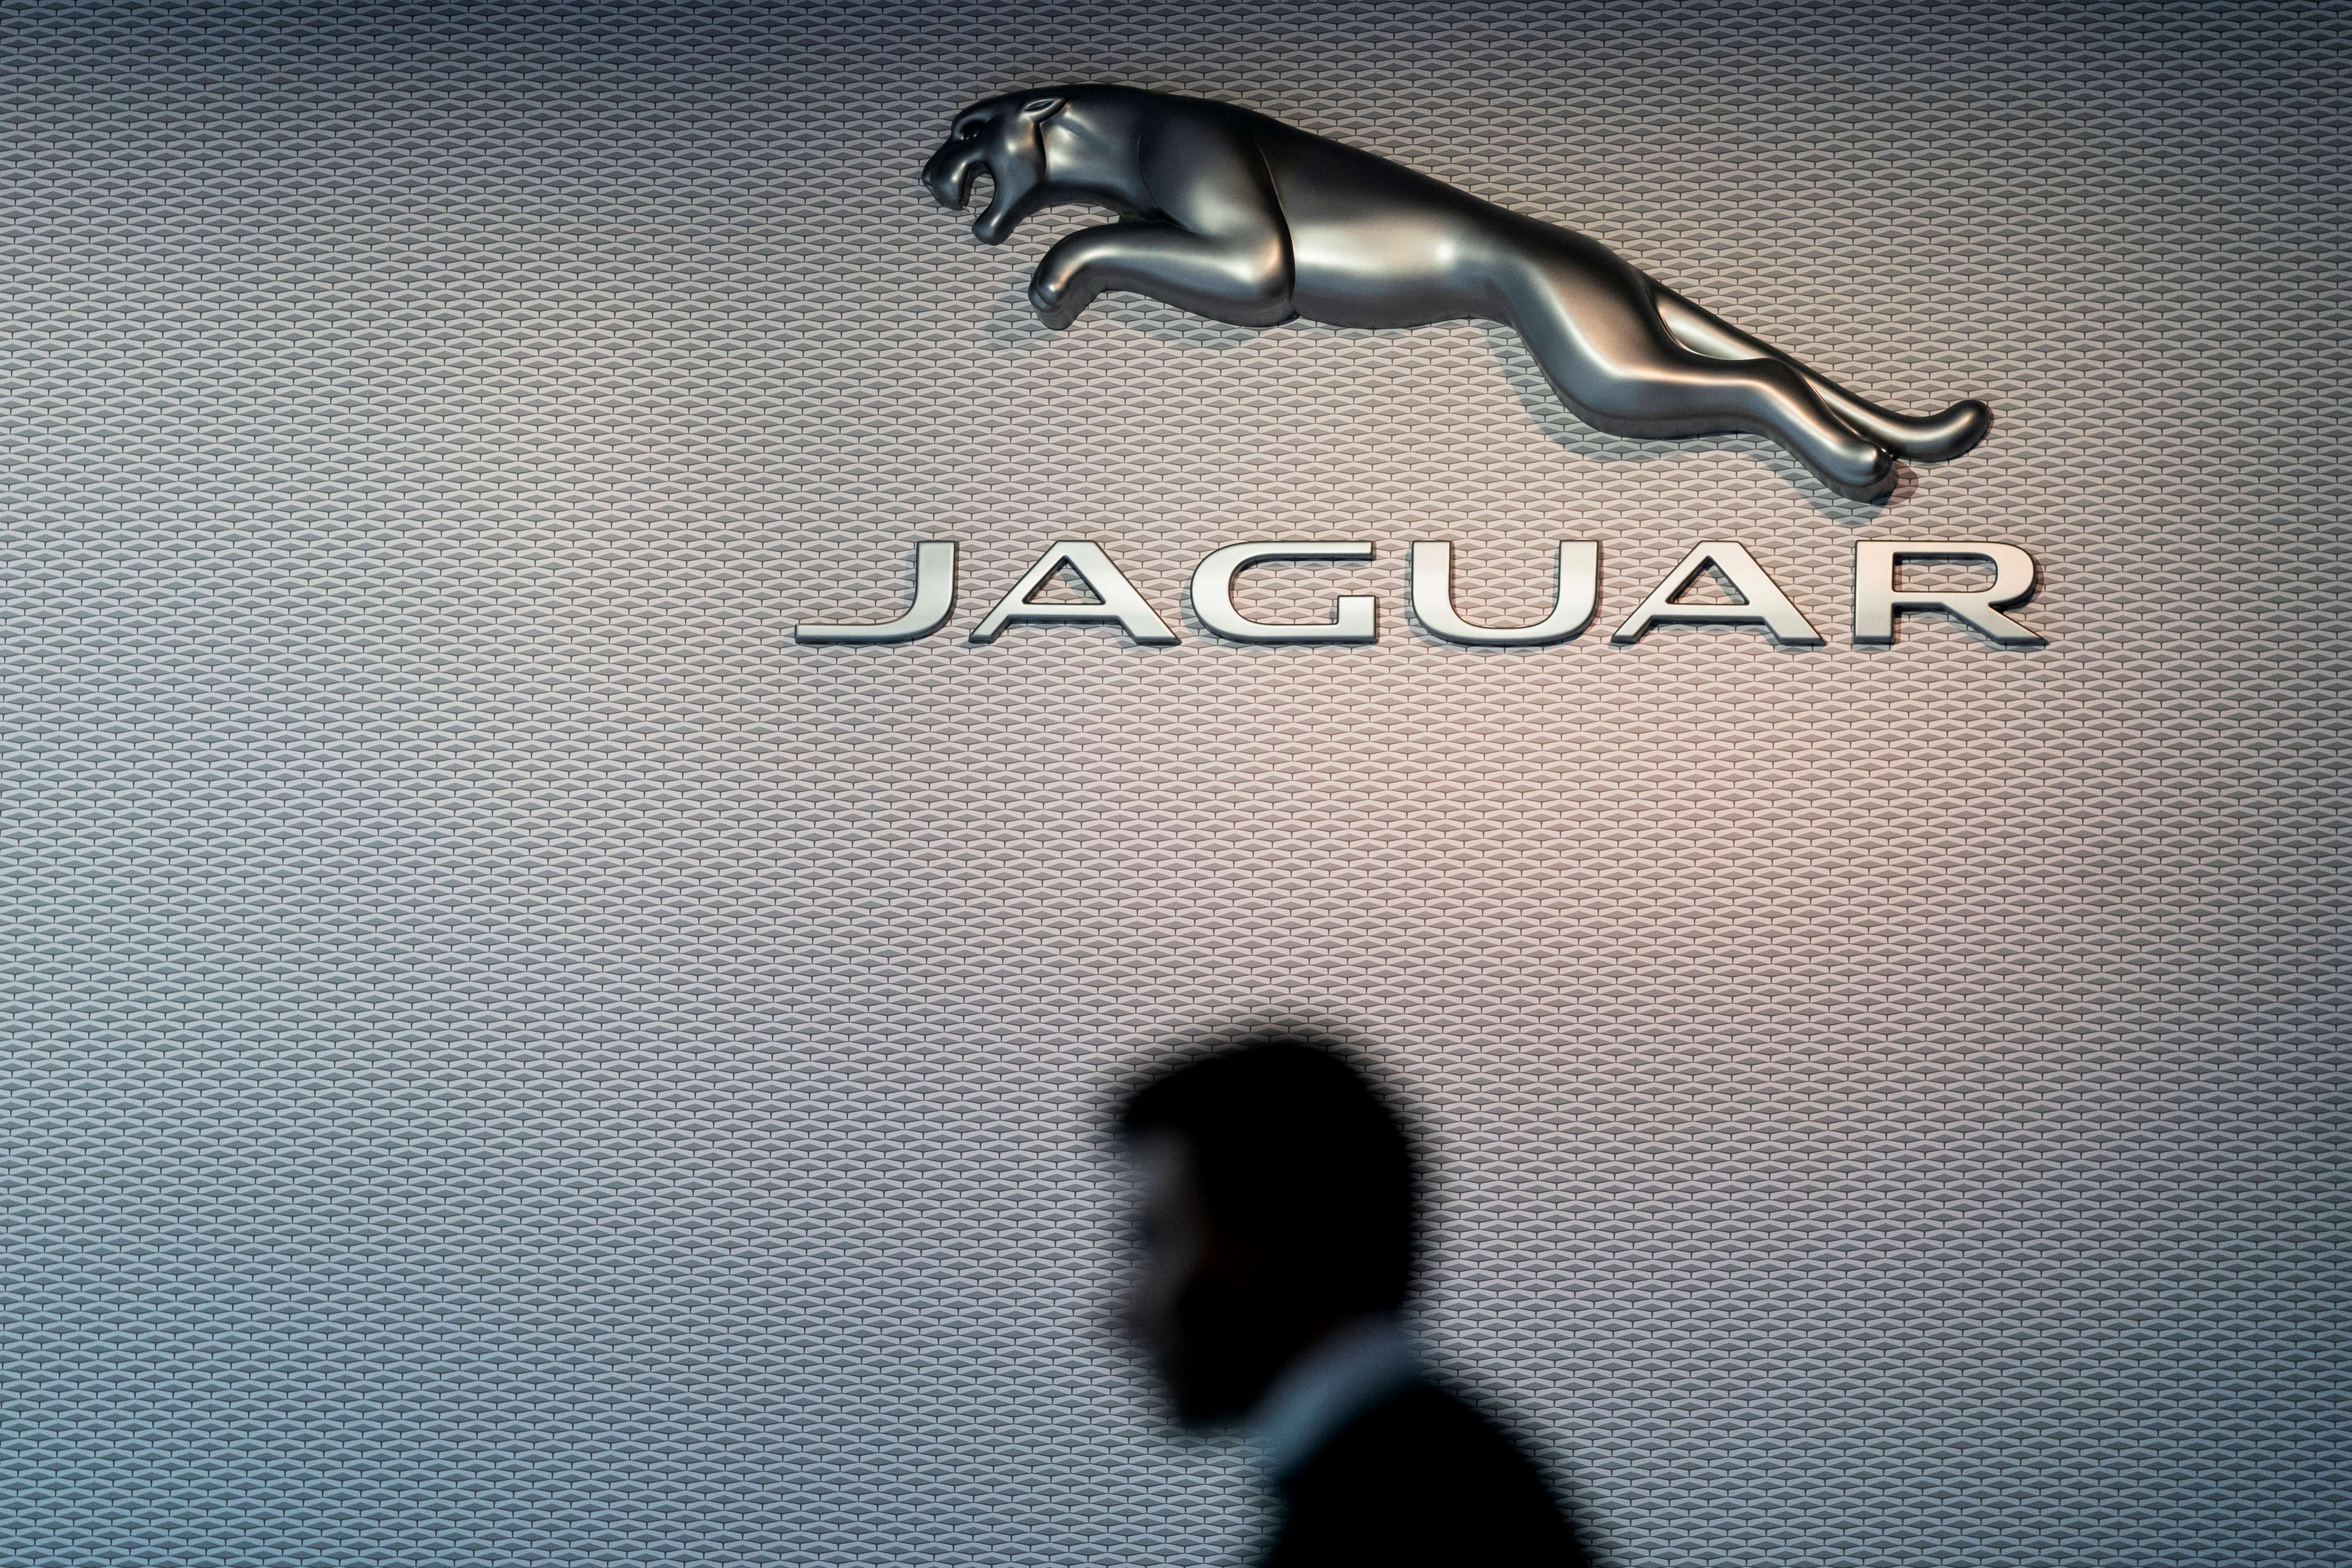 Jaguar car brand to go fully electric from 2025: company